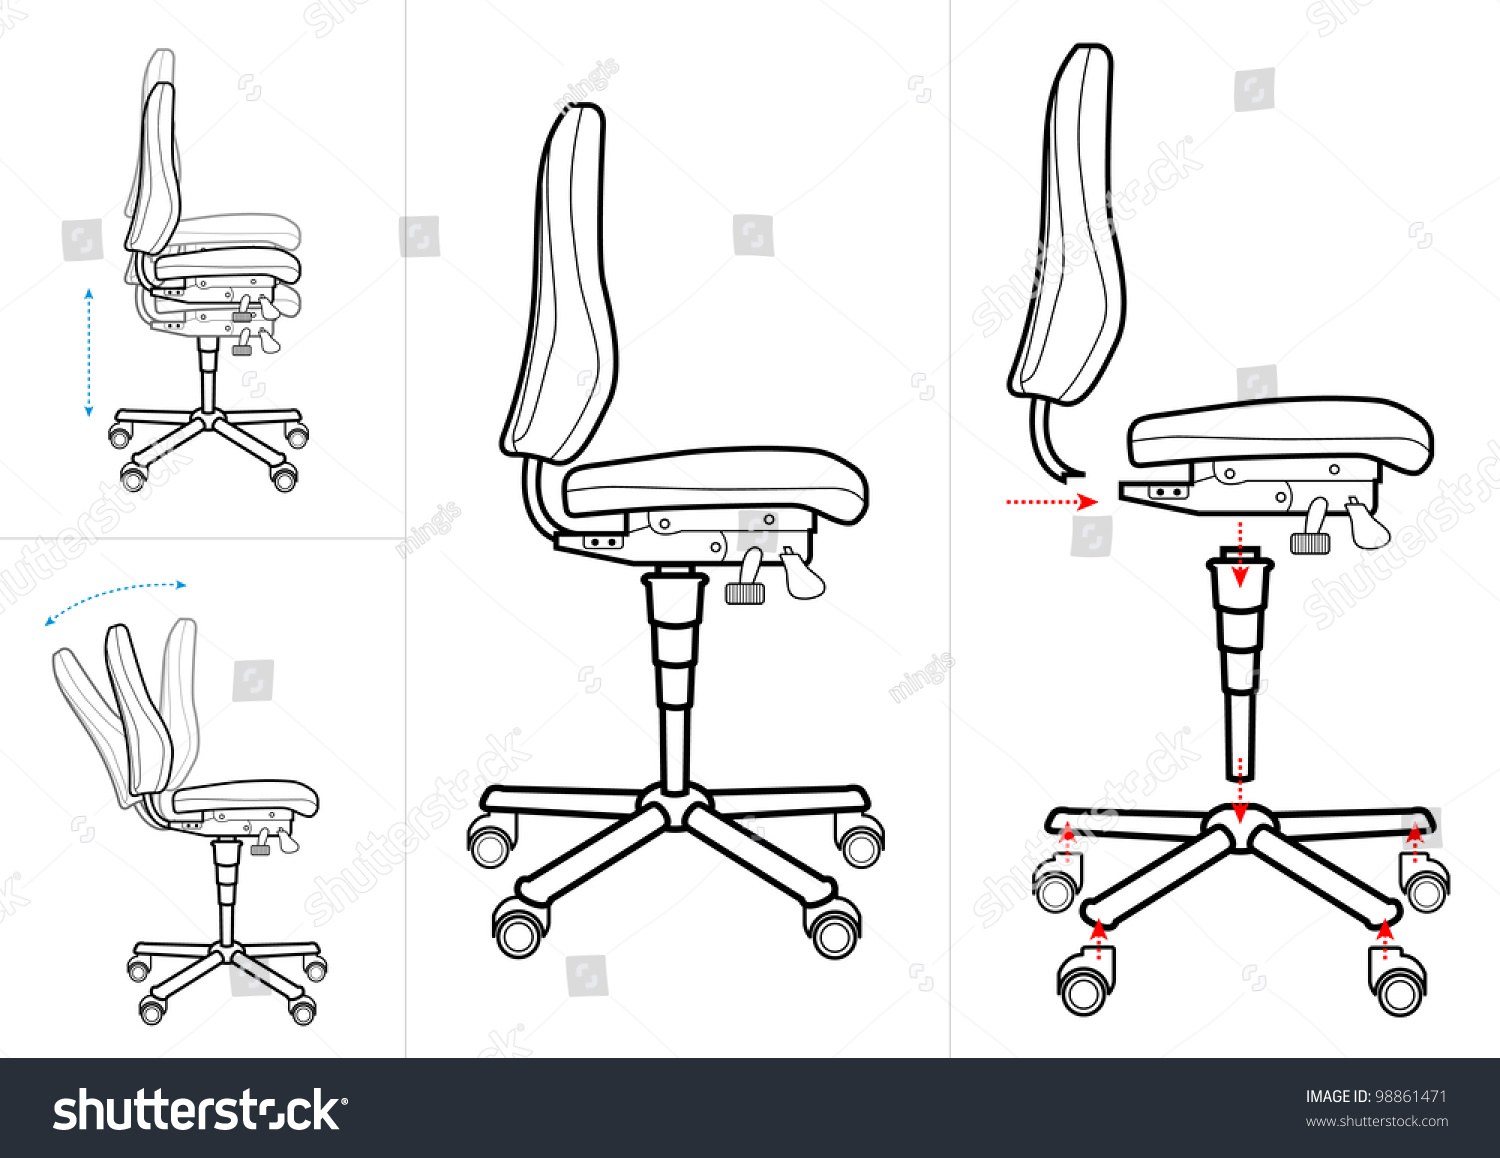 Office Chair Instructions Drawing